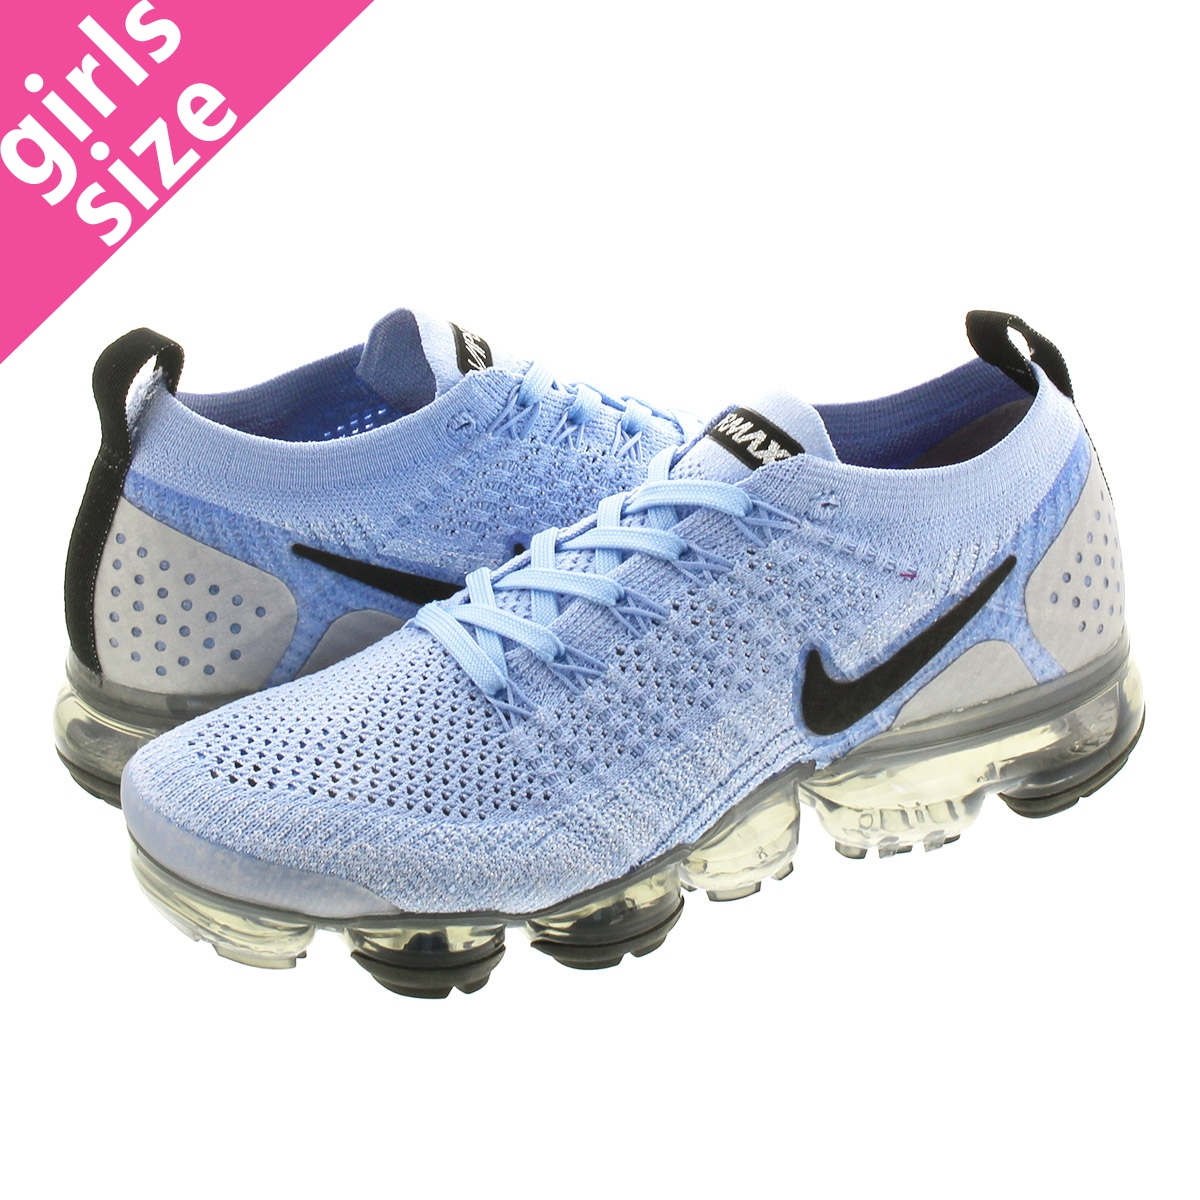 NIKE WMNS AIR VAPORMAX FLYKNIT 2 ナイキ ウィメンズ ヴェイパー マックス フライニット 2 ALMINUM/BLACK/METALIC SILVER 942843-402